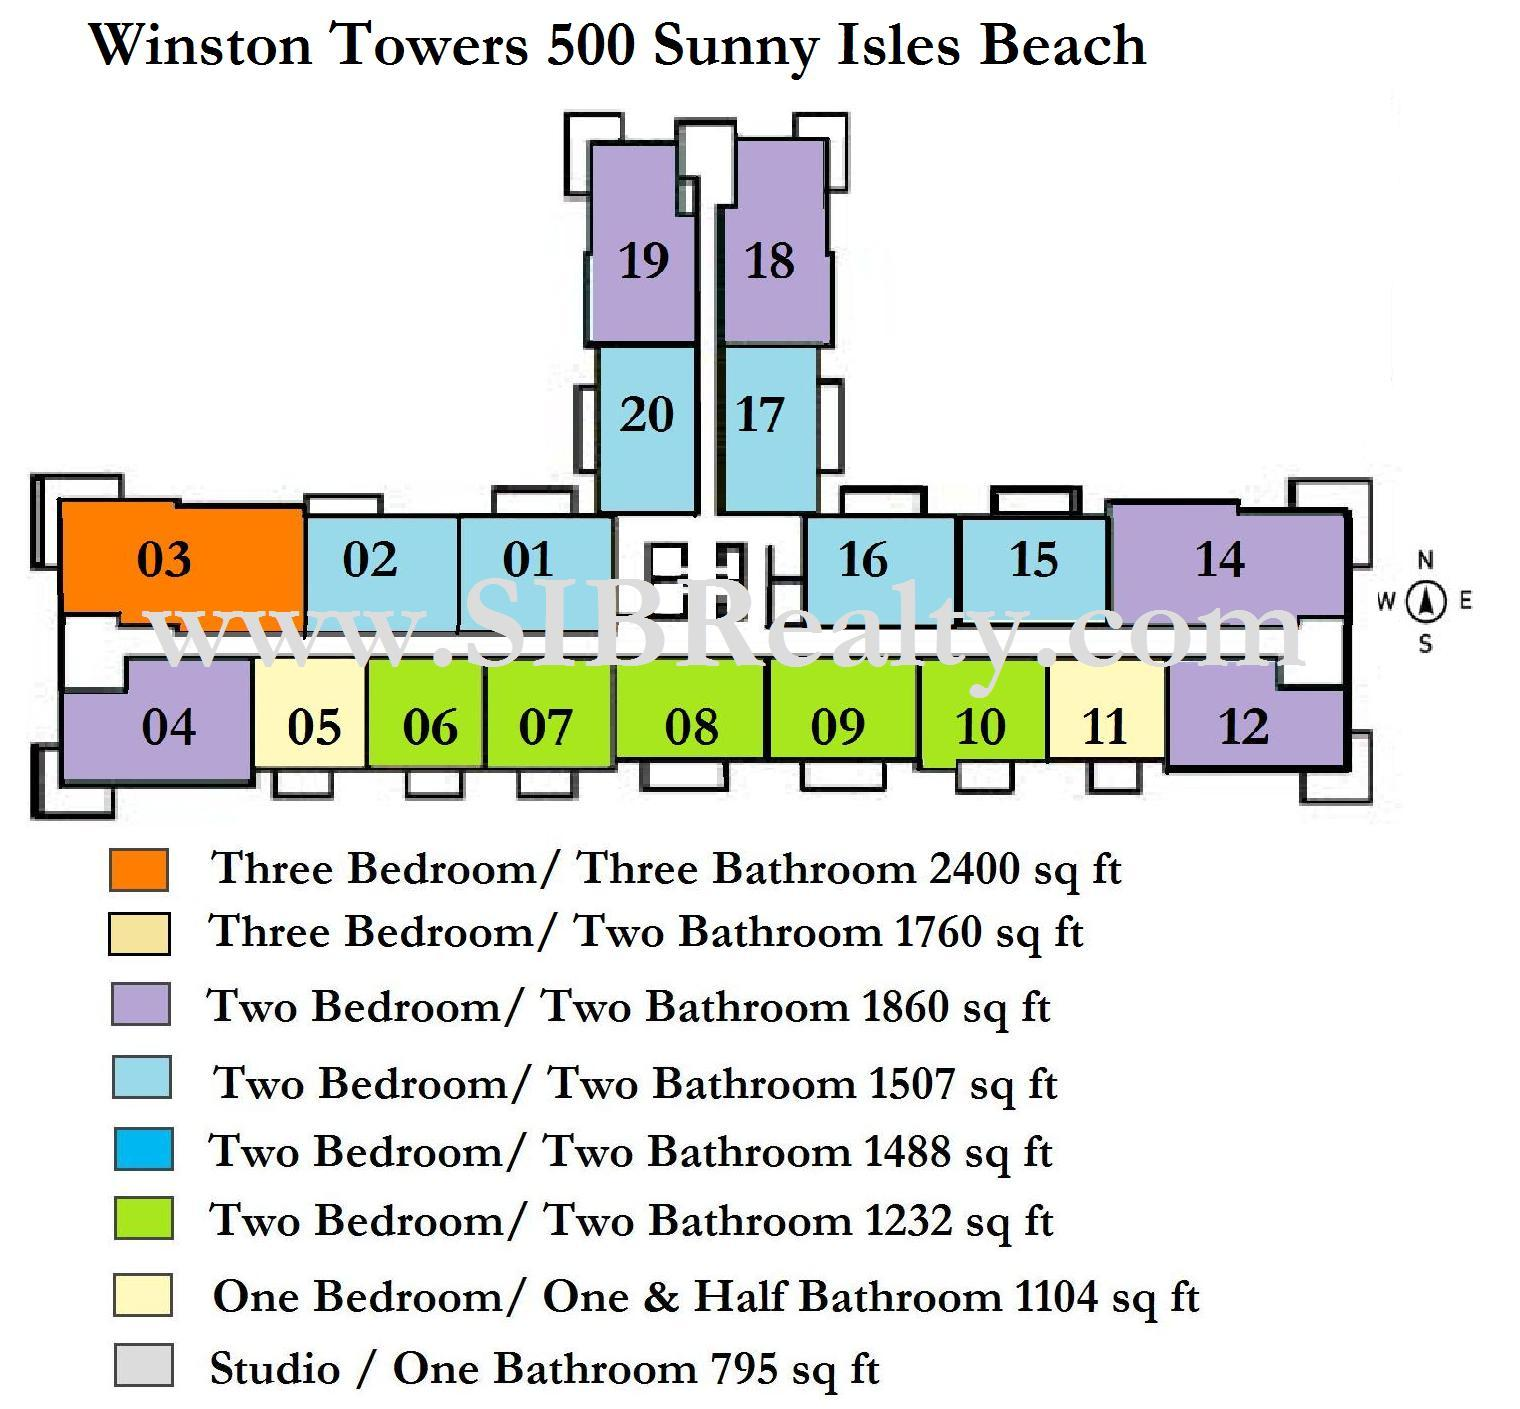 Winston Towers 500 Sunny Isles Beach Site Plan